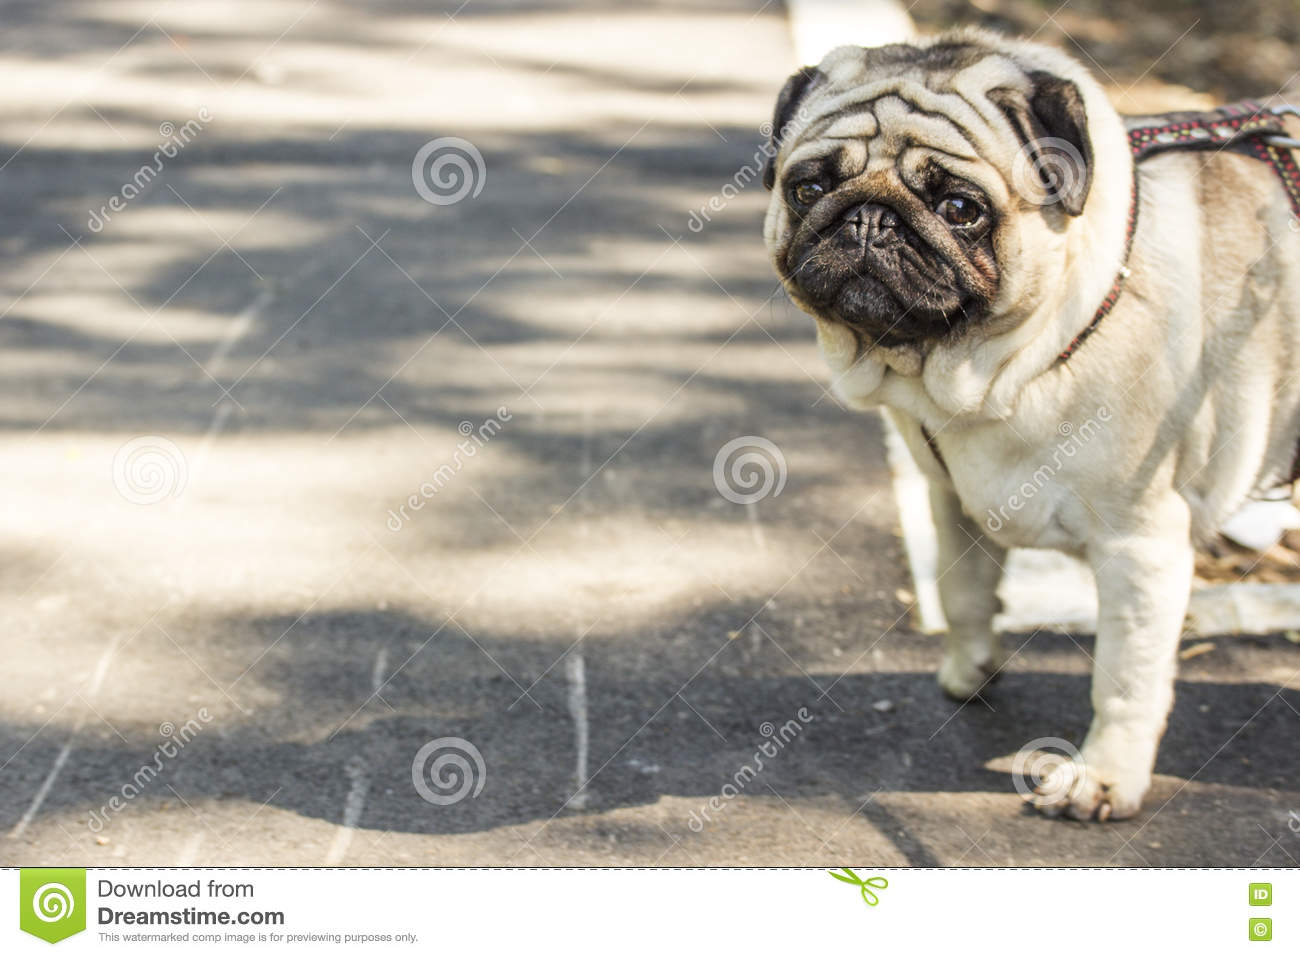 pug wallpaper stock image. image of wooden, happy, background - 72105857